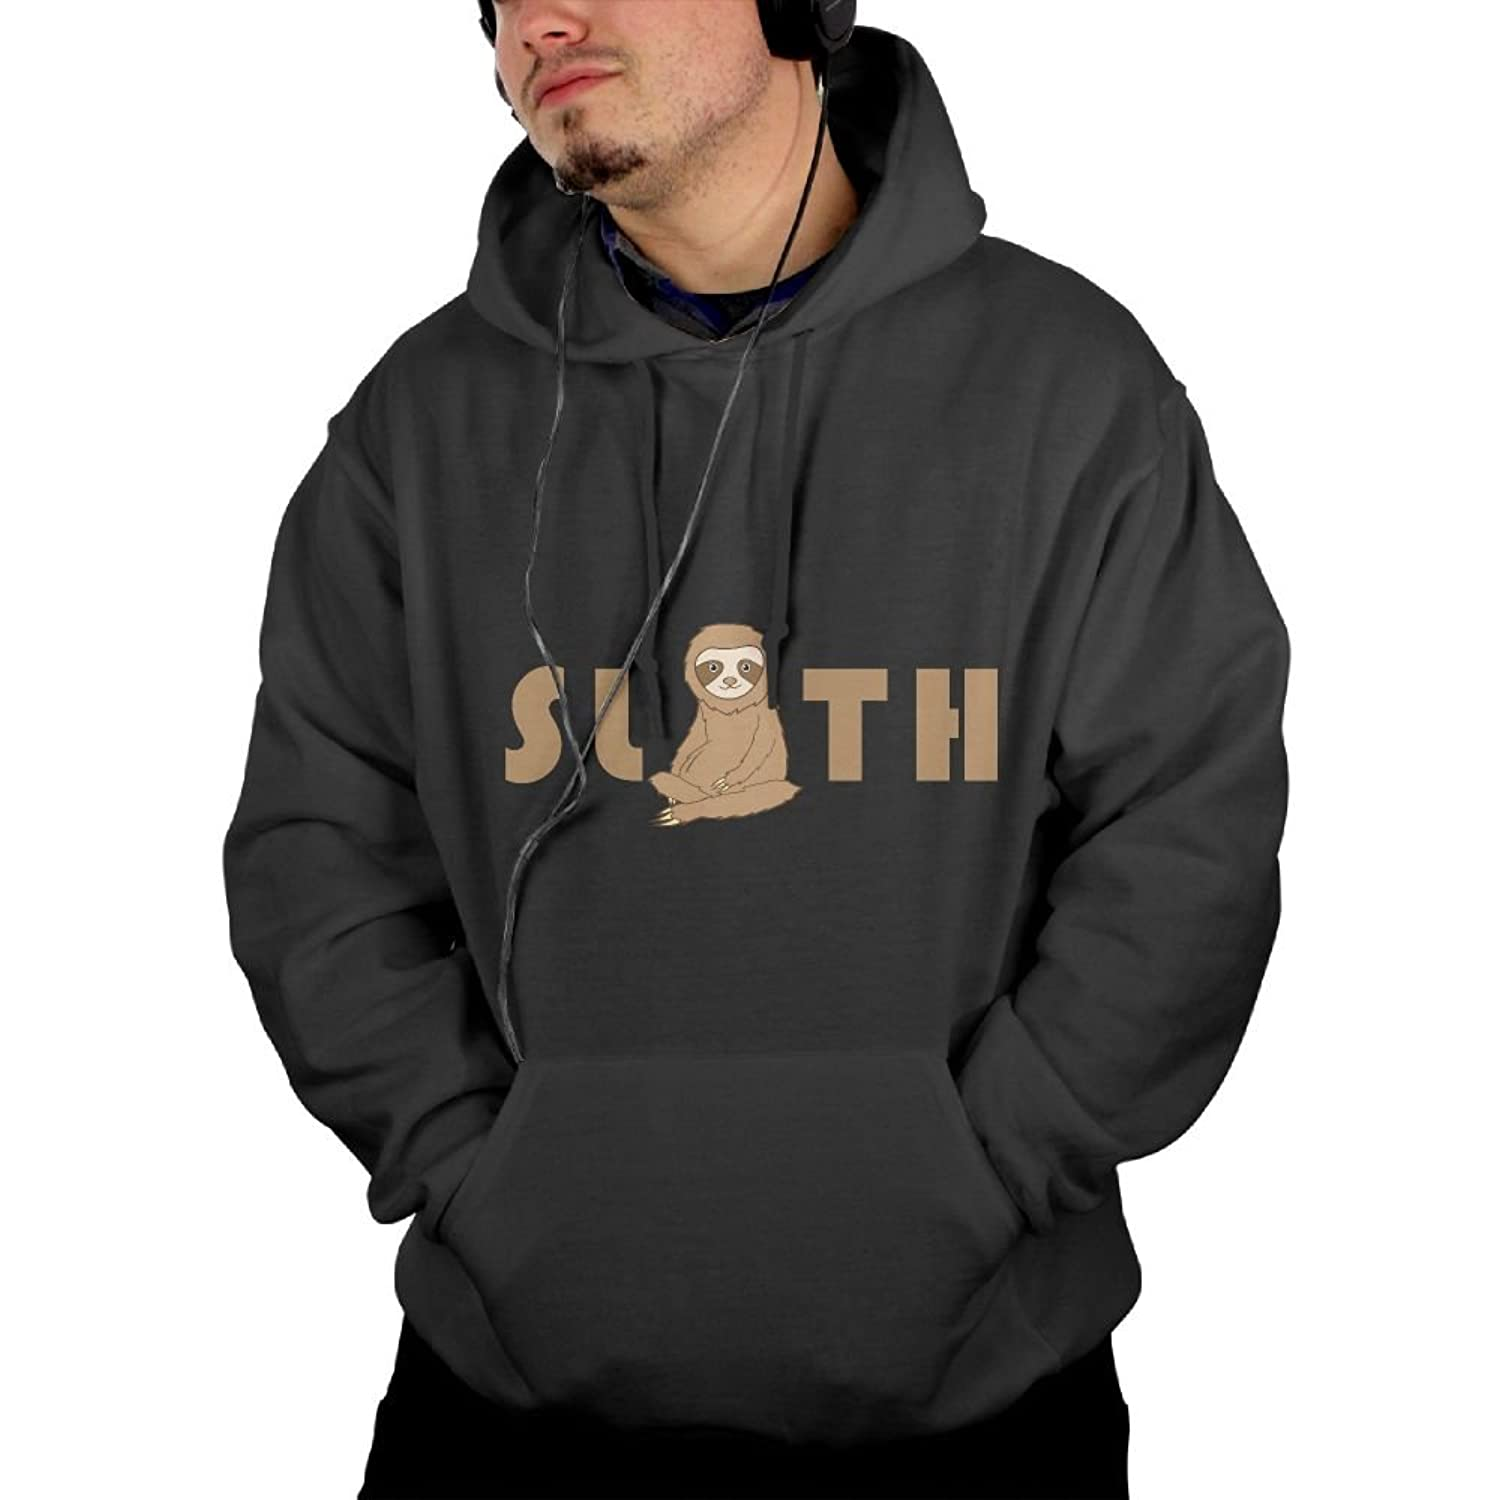 New Cute Cartoon Sloth Hooded Drawstring Sweatshirts Pullover Hoodies With Pockets For Men hot sale